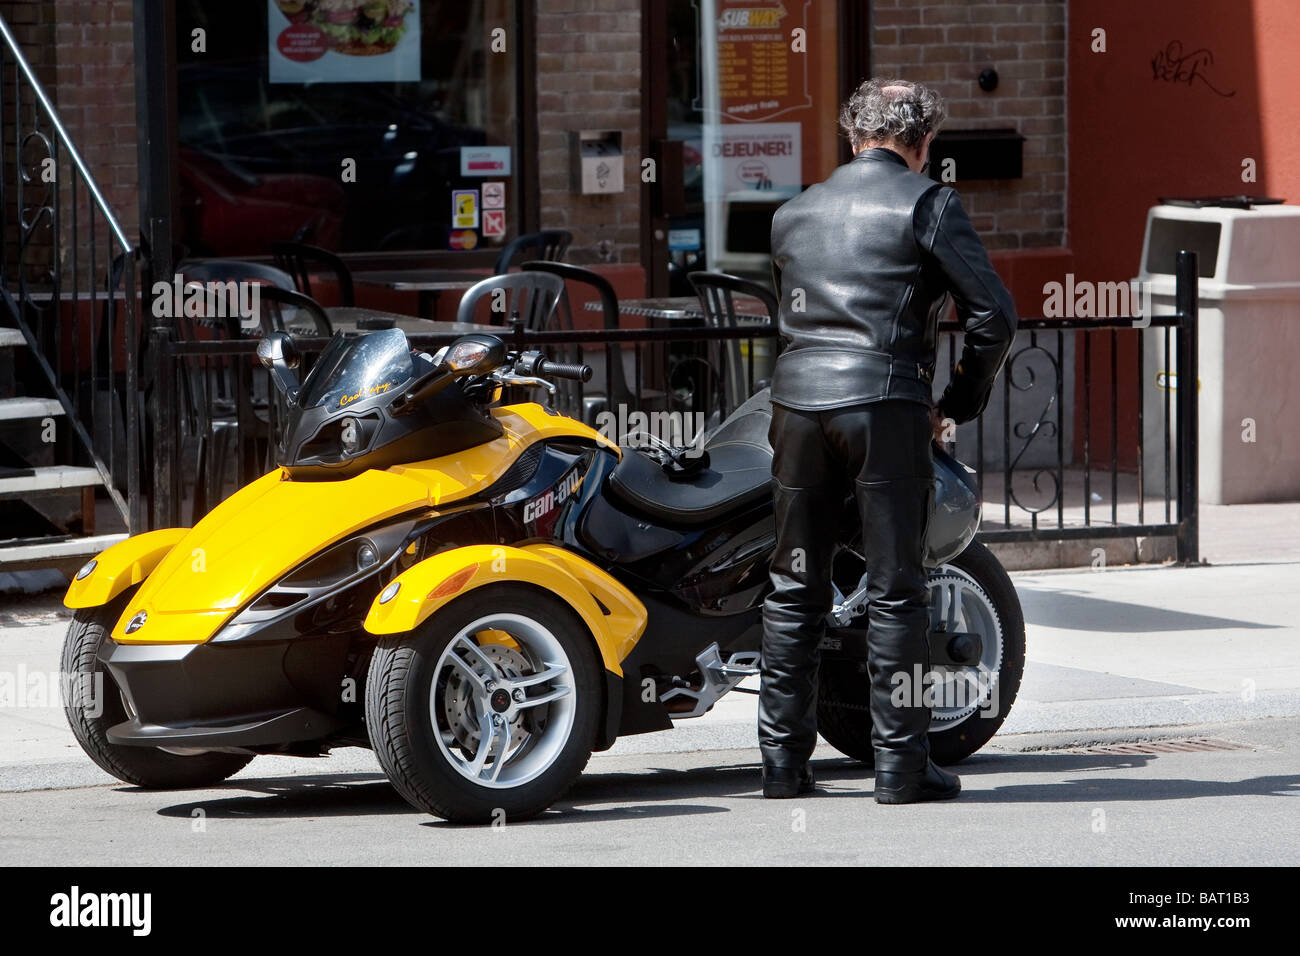 Brp can am spyder roadster is seen on avenue cartier in quebec city stock image